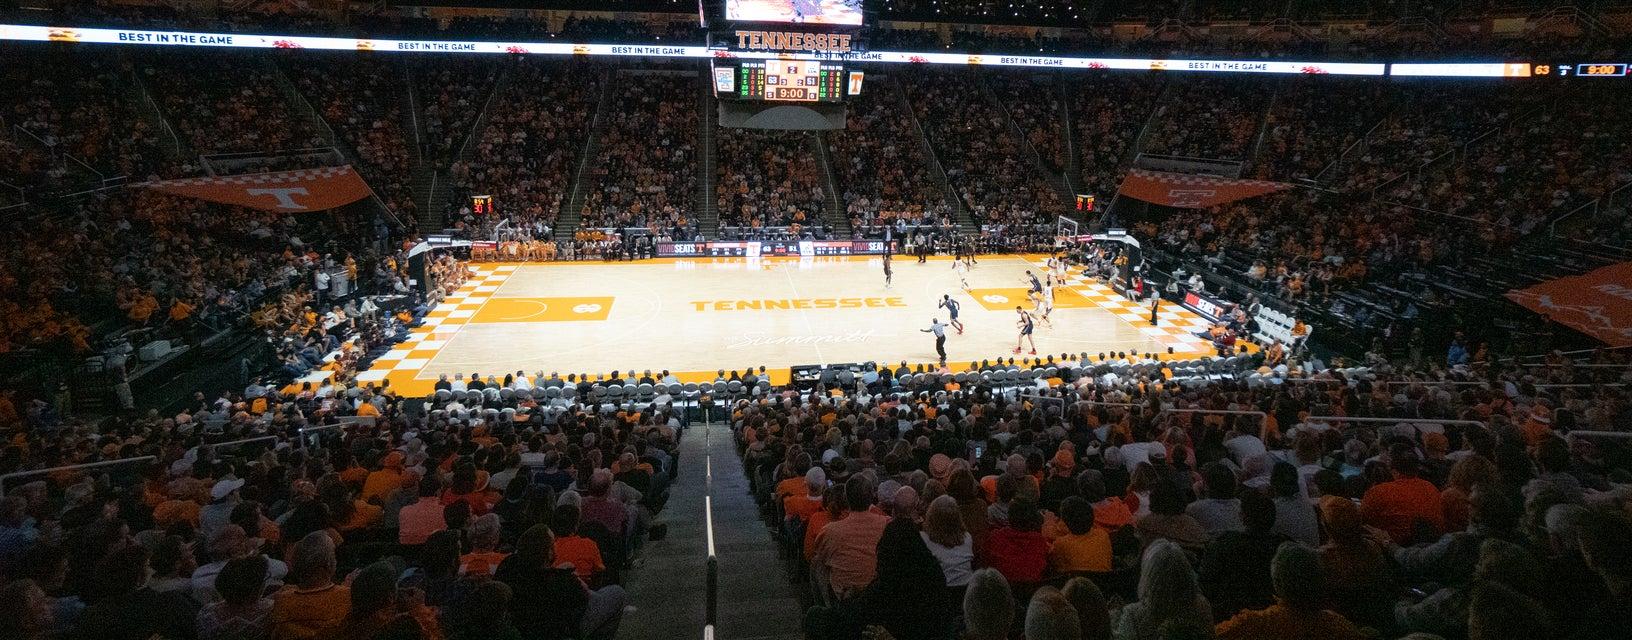 Tennessee Basketball Tickets